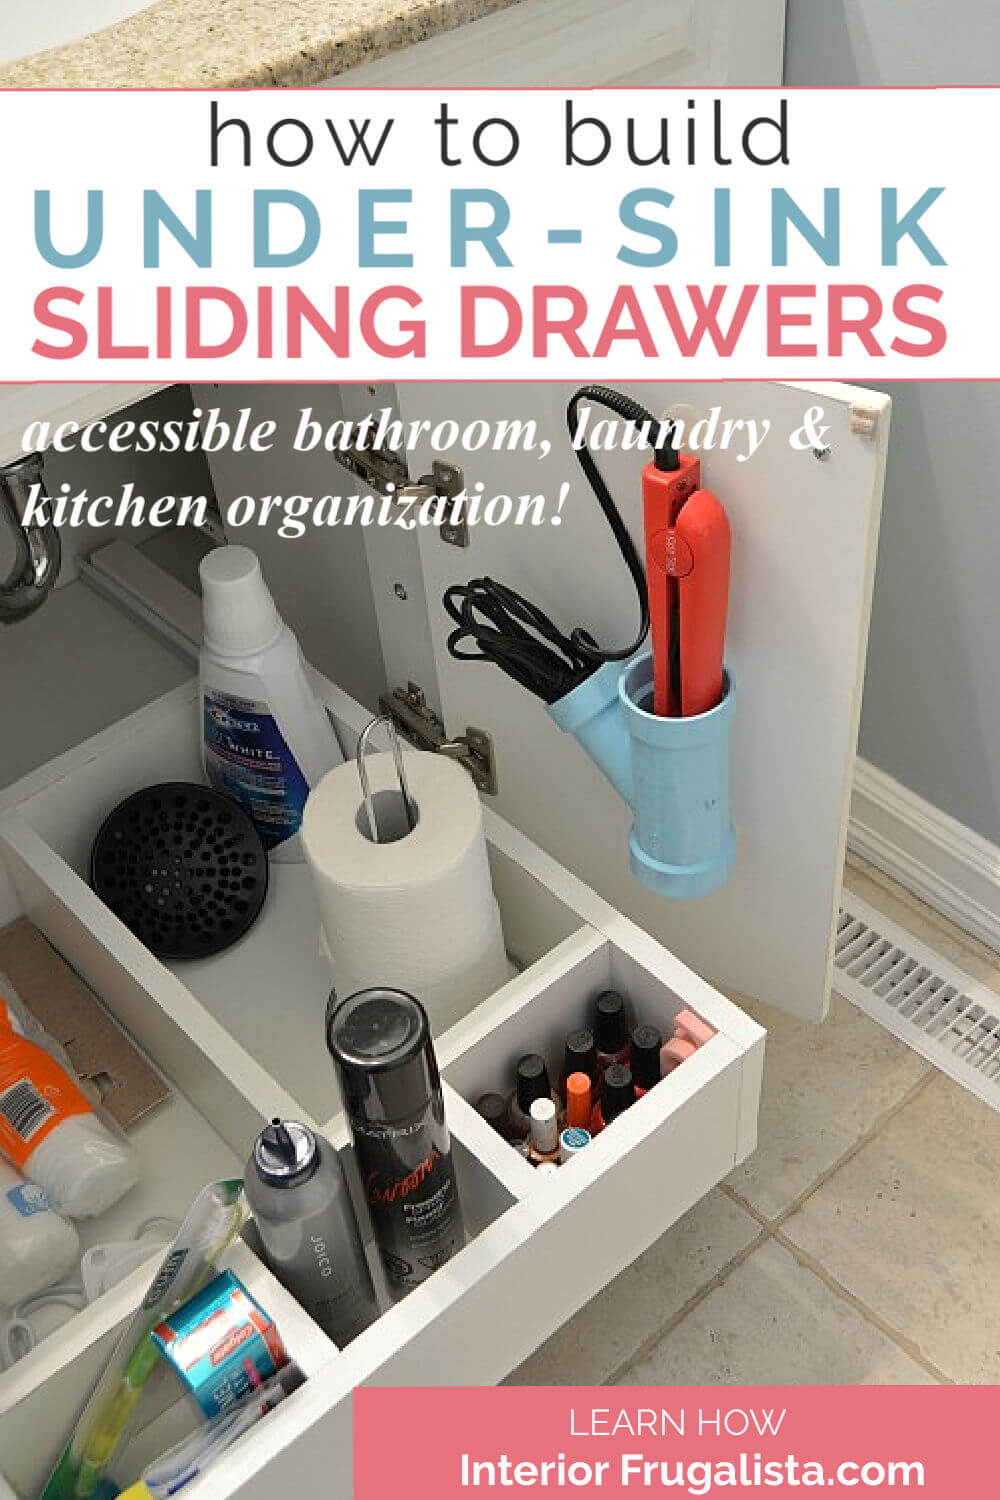 How to build handy under-sink sliding drawers for easily accessible bathroom, laundry, and kitchen storage organization with an easy to follow step-by-step tutorial. #slidingshelfdiy #undersinkstorage #undersinkdrawer #undersinkorganization